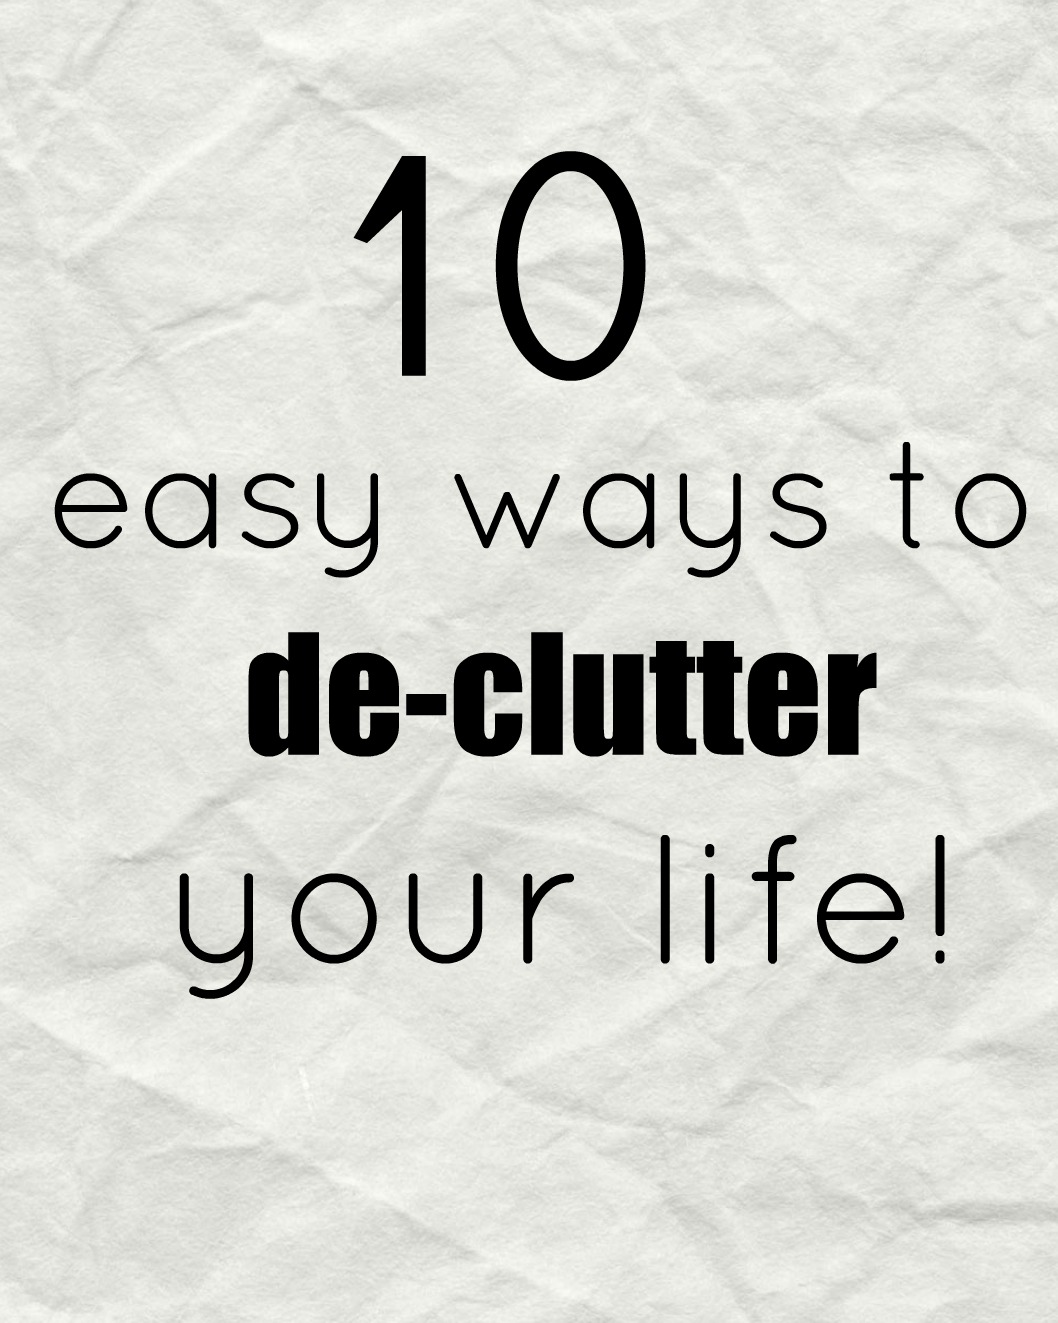 10 Easy Ways To Fix Your Door In Under An Hour: Minimalismmission: 10 EASY WAYS TO DE-CLUTTER YOUR LIFE